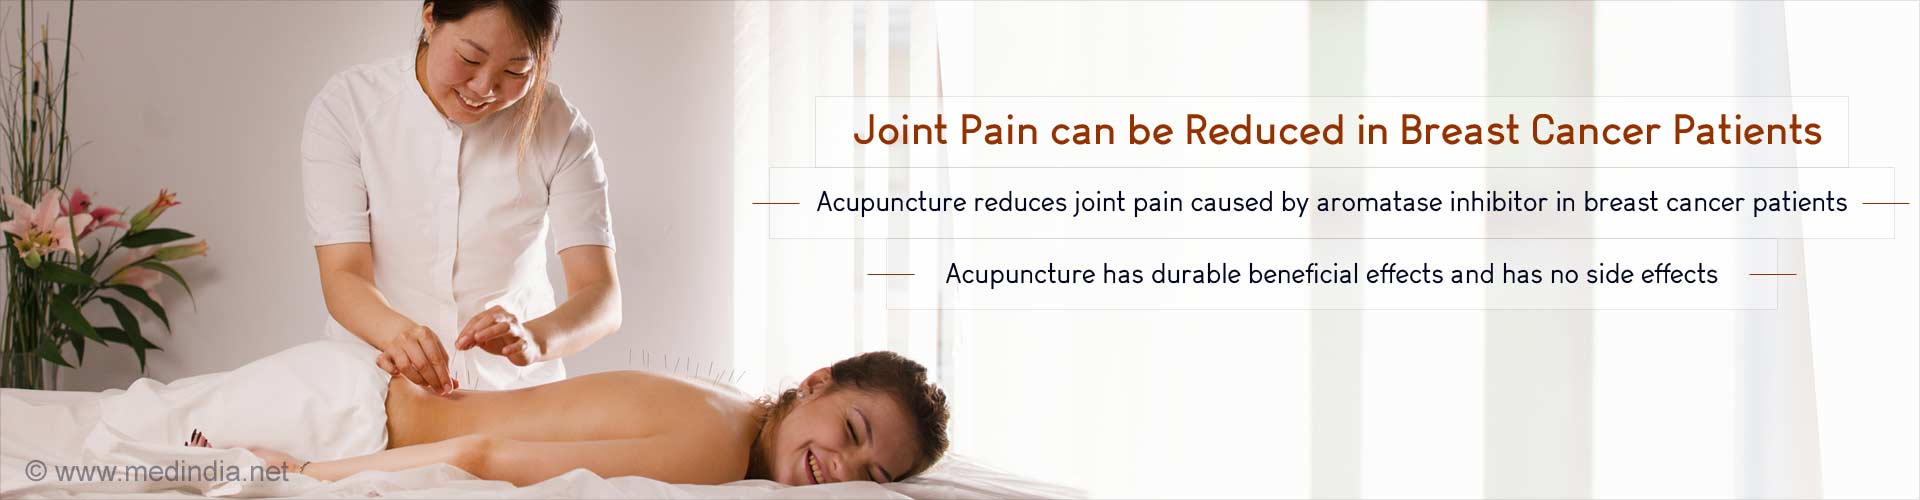 Acupuncture can Reduce Joint Pain in Breast Cancer Patients